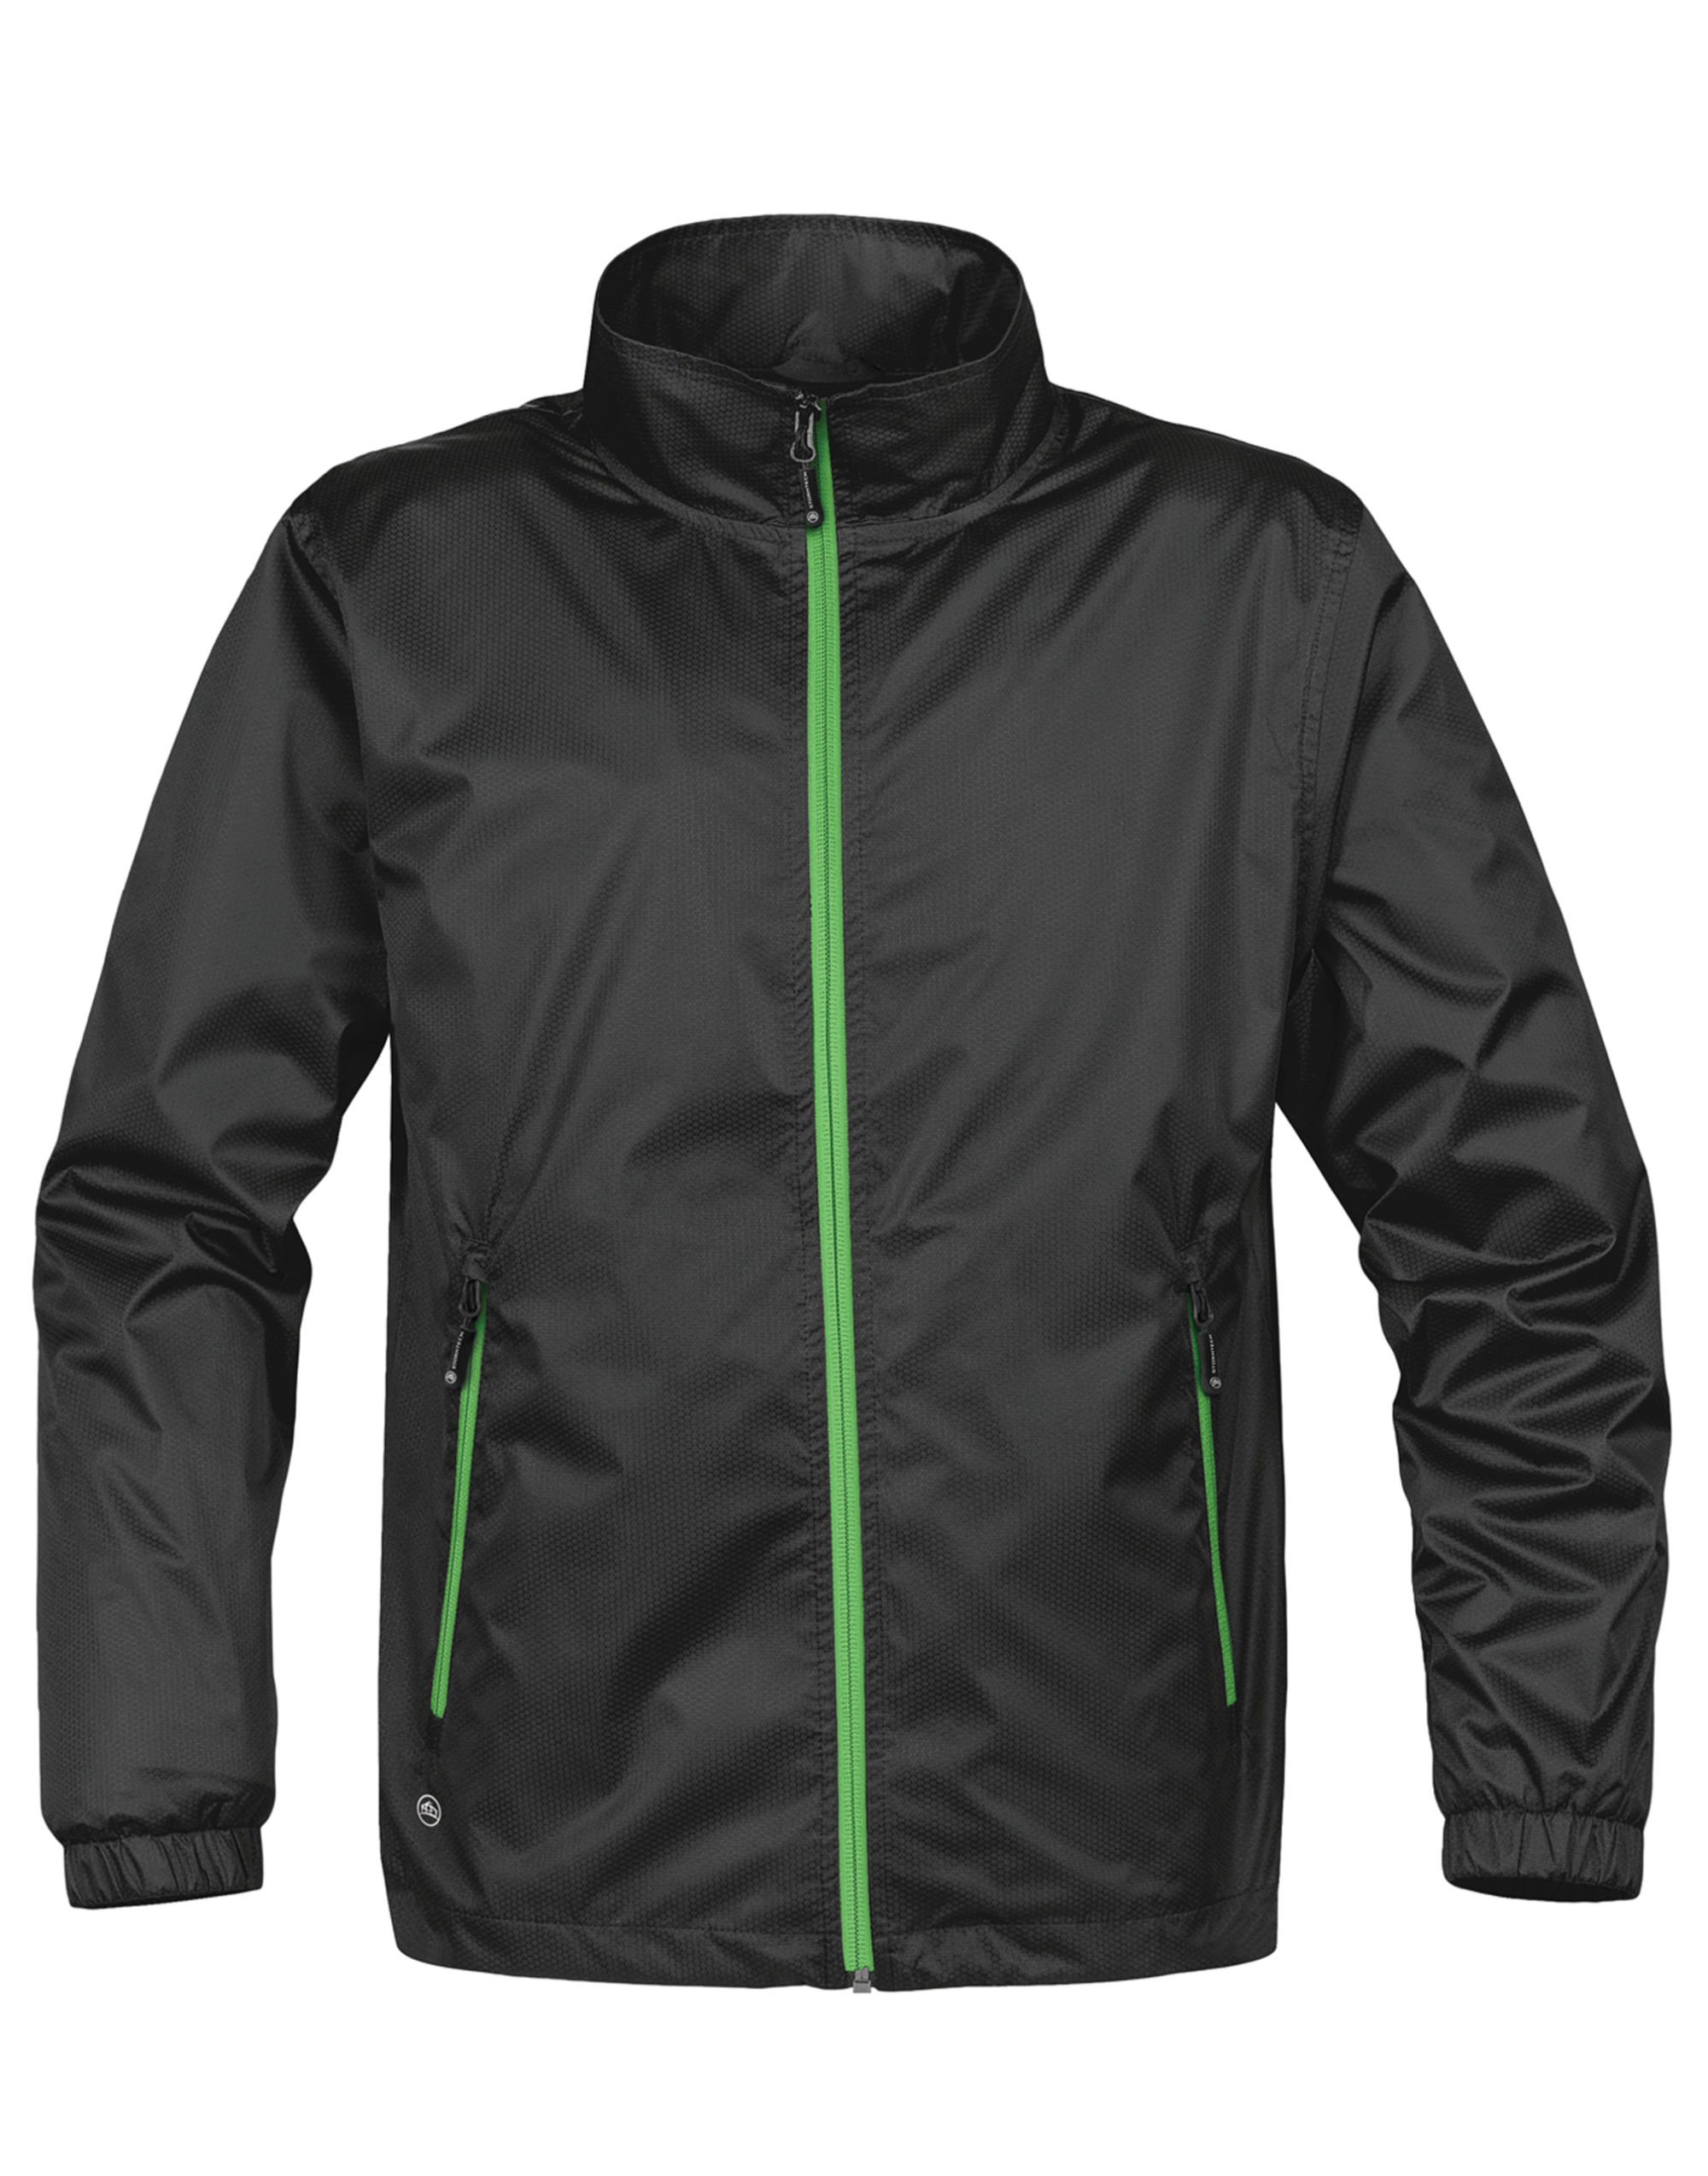 Stormtech Men's Axis Lightweight Shell